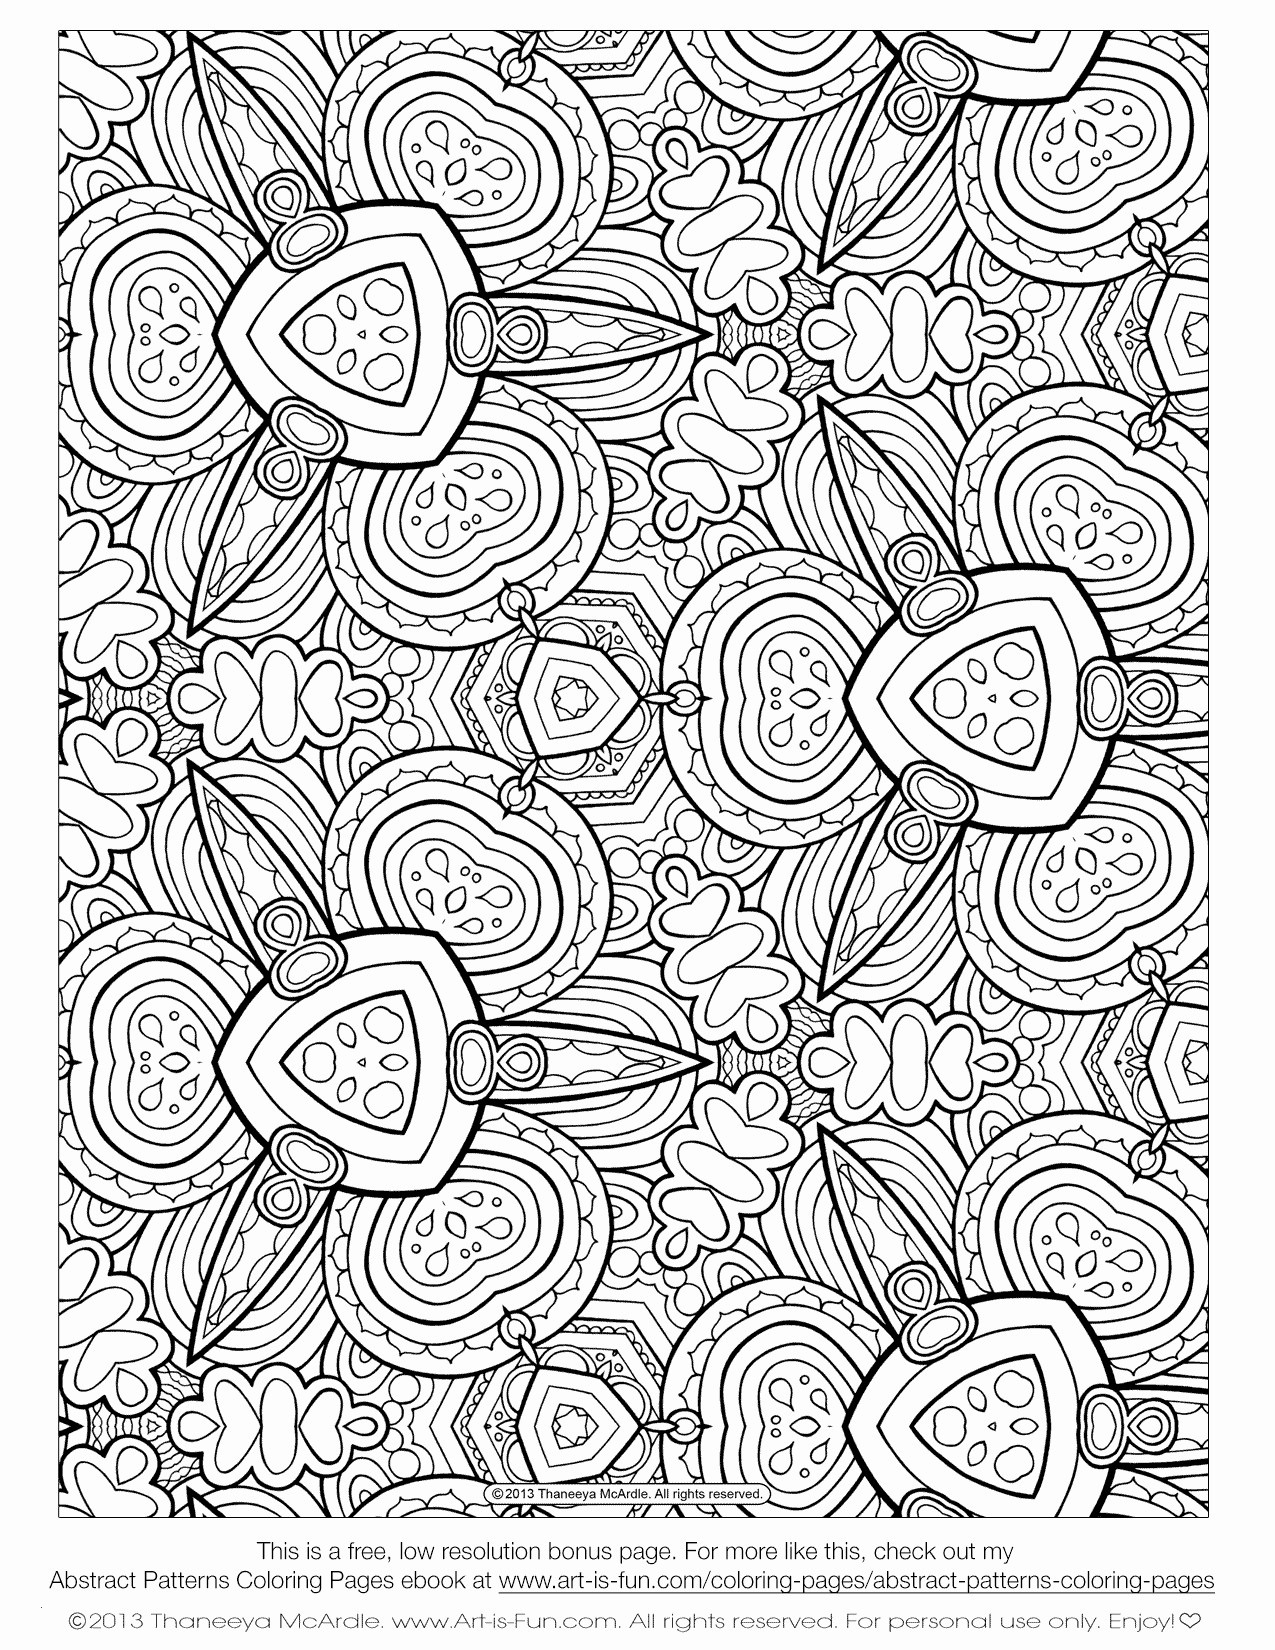 exotic coloring pages Download-Exotic Coloring Pages Printing Coloring Nice Free Coloring Pages Elegant Crayola Pages 0d 9-j